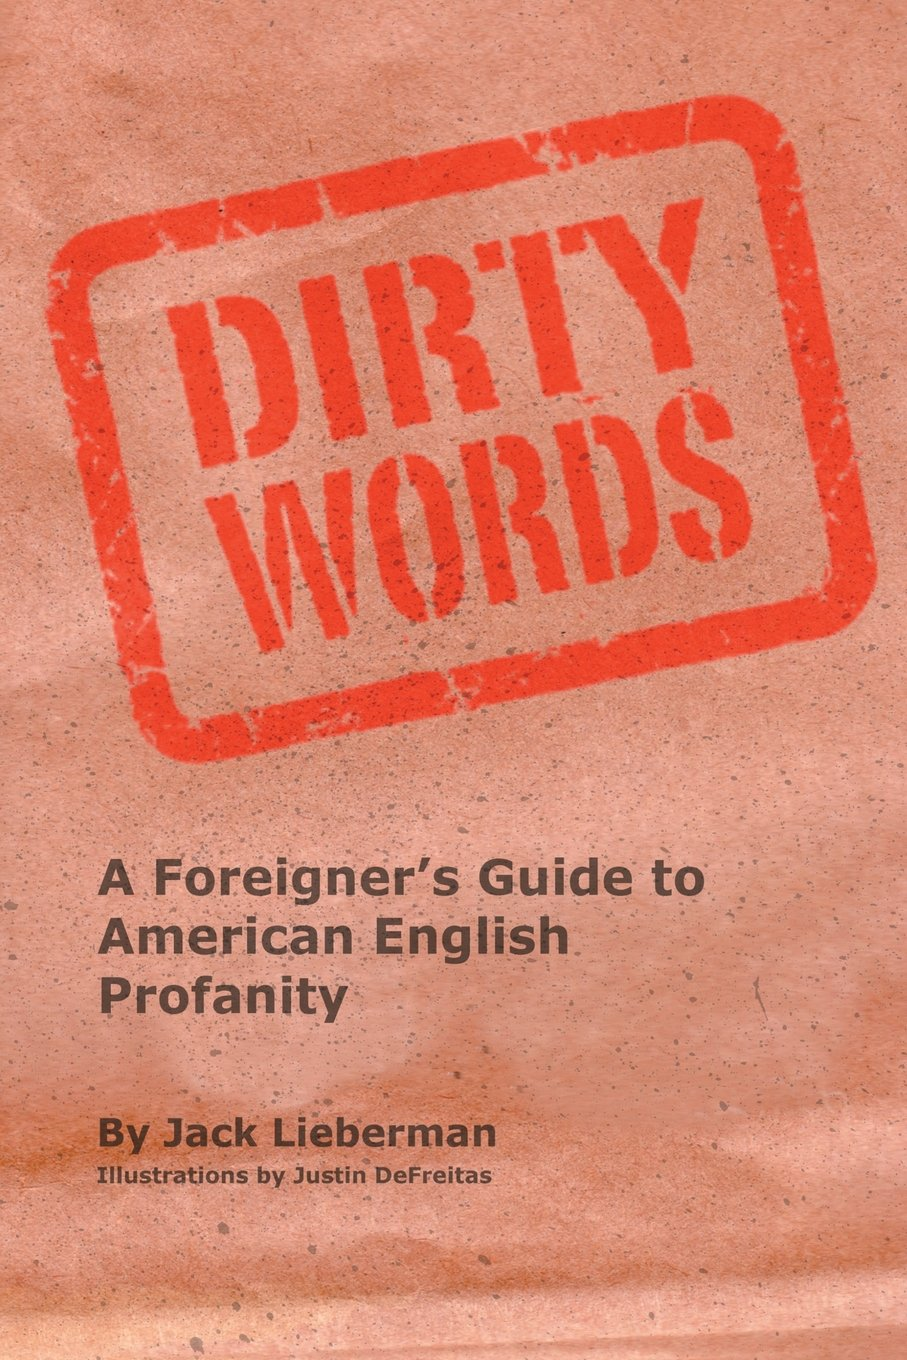 Download Dirty Words: A Foreigner's Guide to American English Profanity pdf